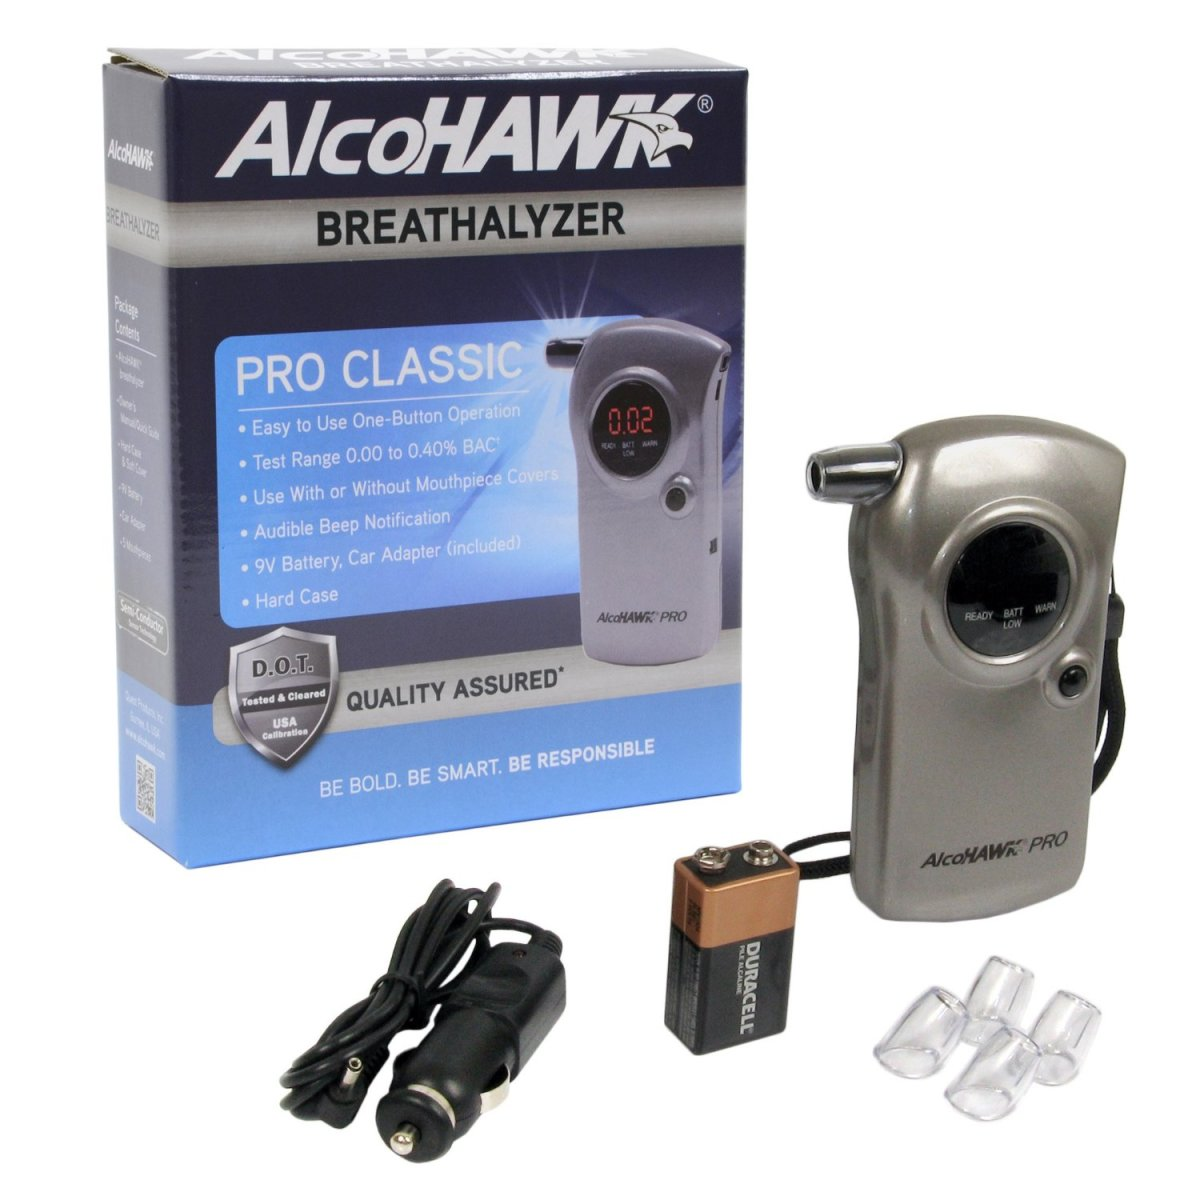 NAlcoHawk Pro: Professional Edition Digital Alcohol Detec